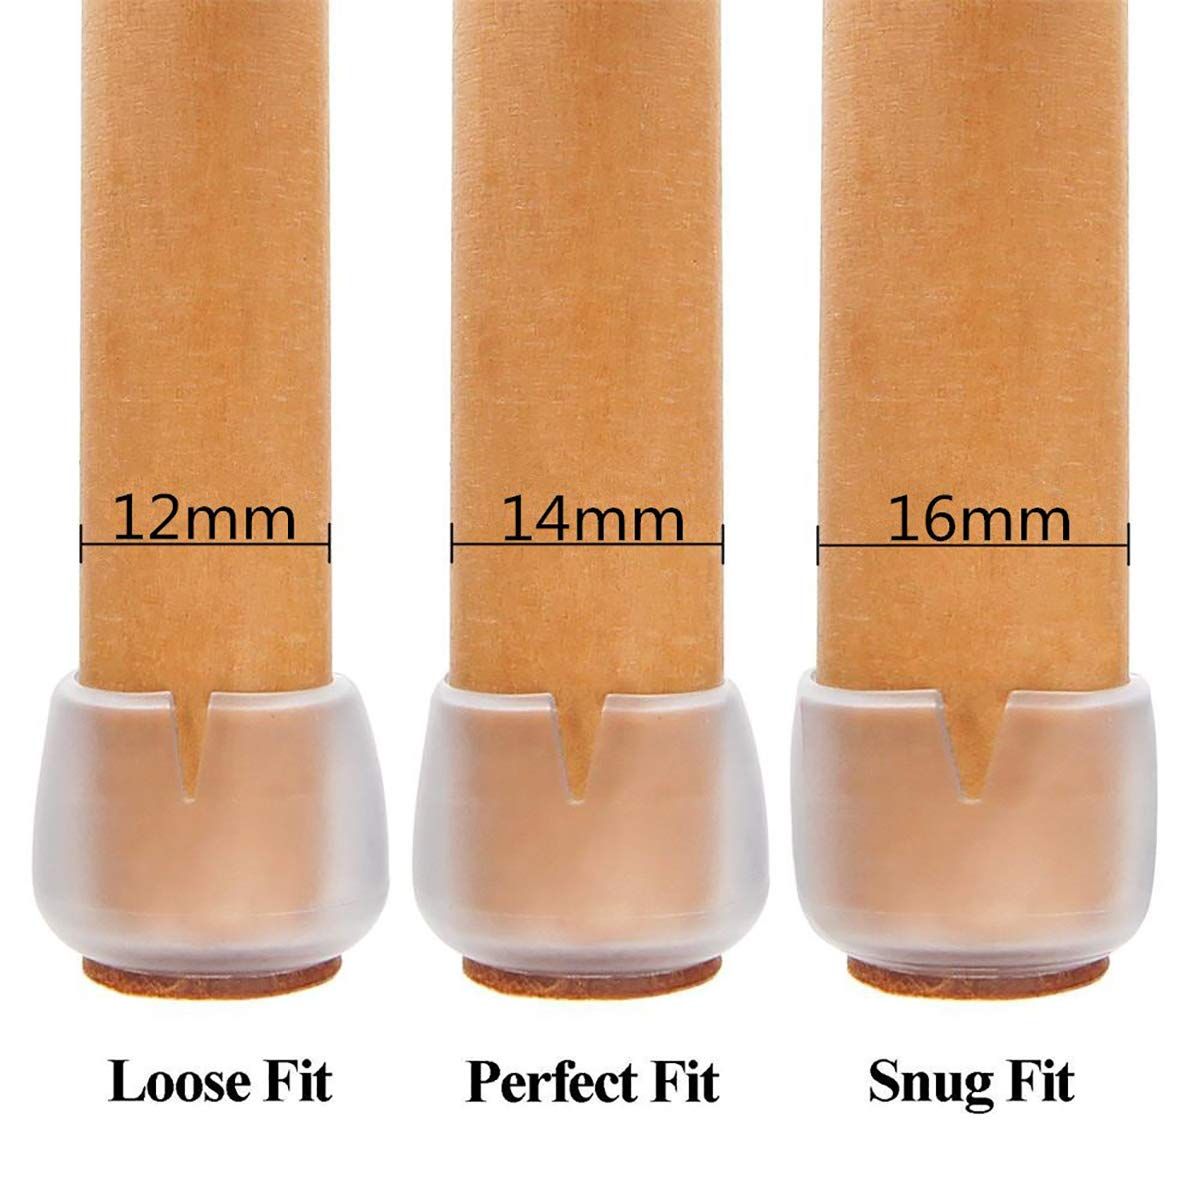 Anti-Scratch Foot Pads 1//2-5//8 Inch 32PCS Chair Leg Caps,Silicone Floor Protectors Roto Silicone Wood Floor Set Suitable for 12-16mm Round Legs Non-Slip Felt Pads